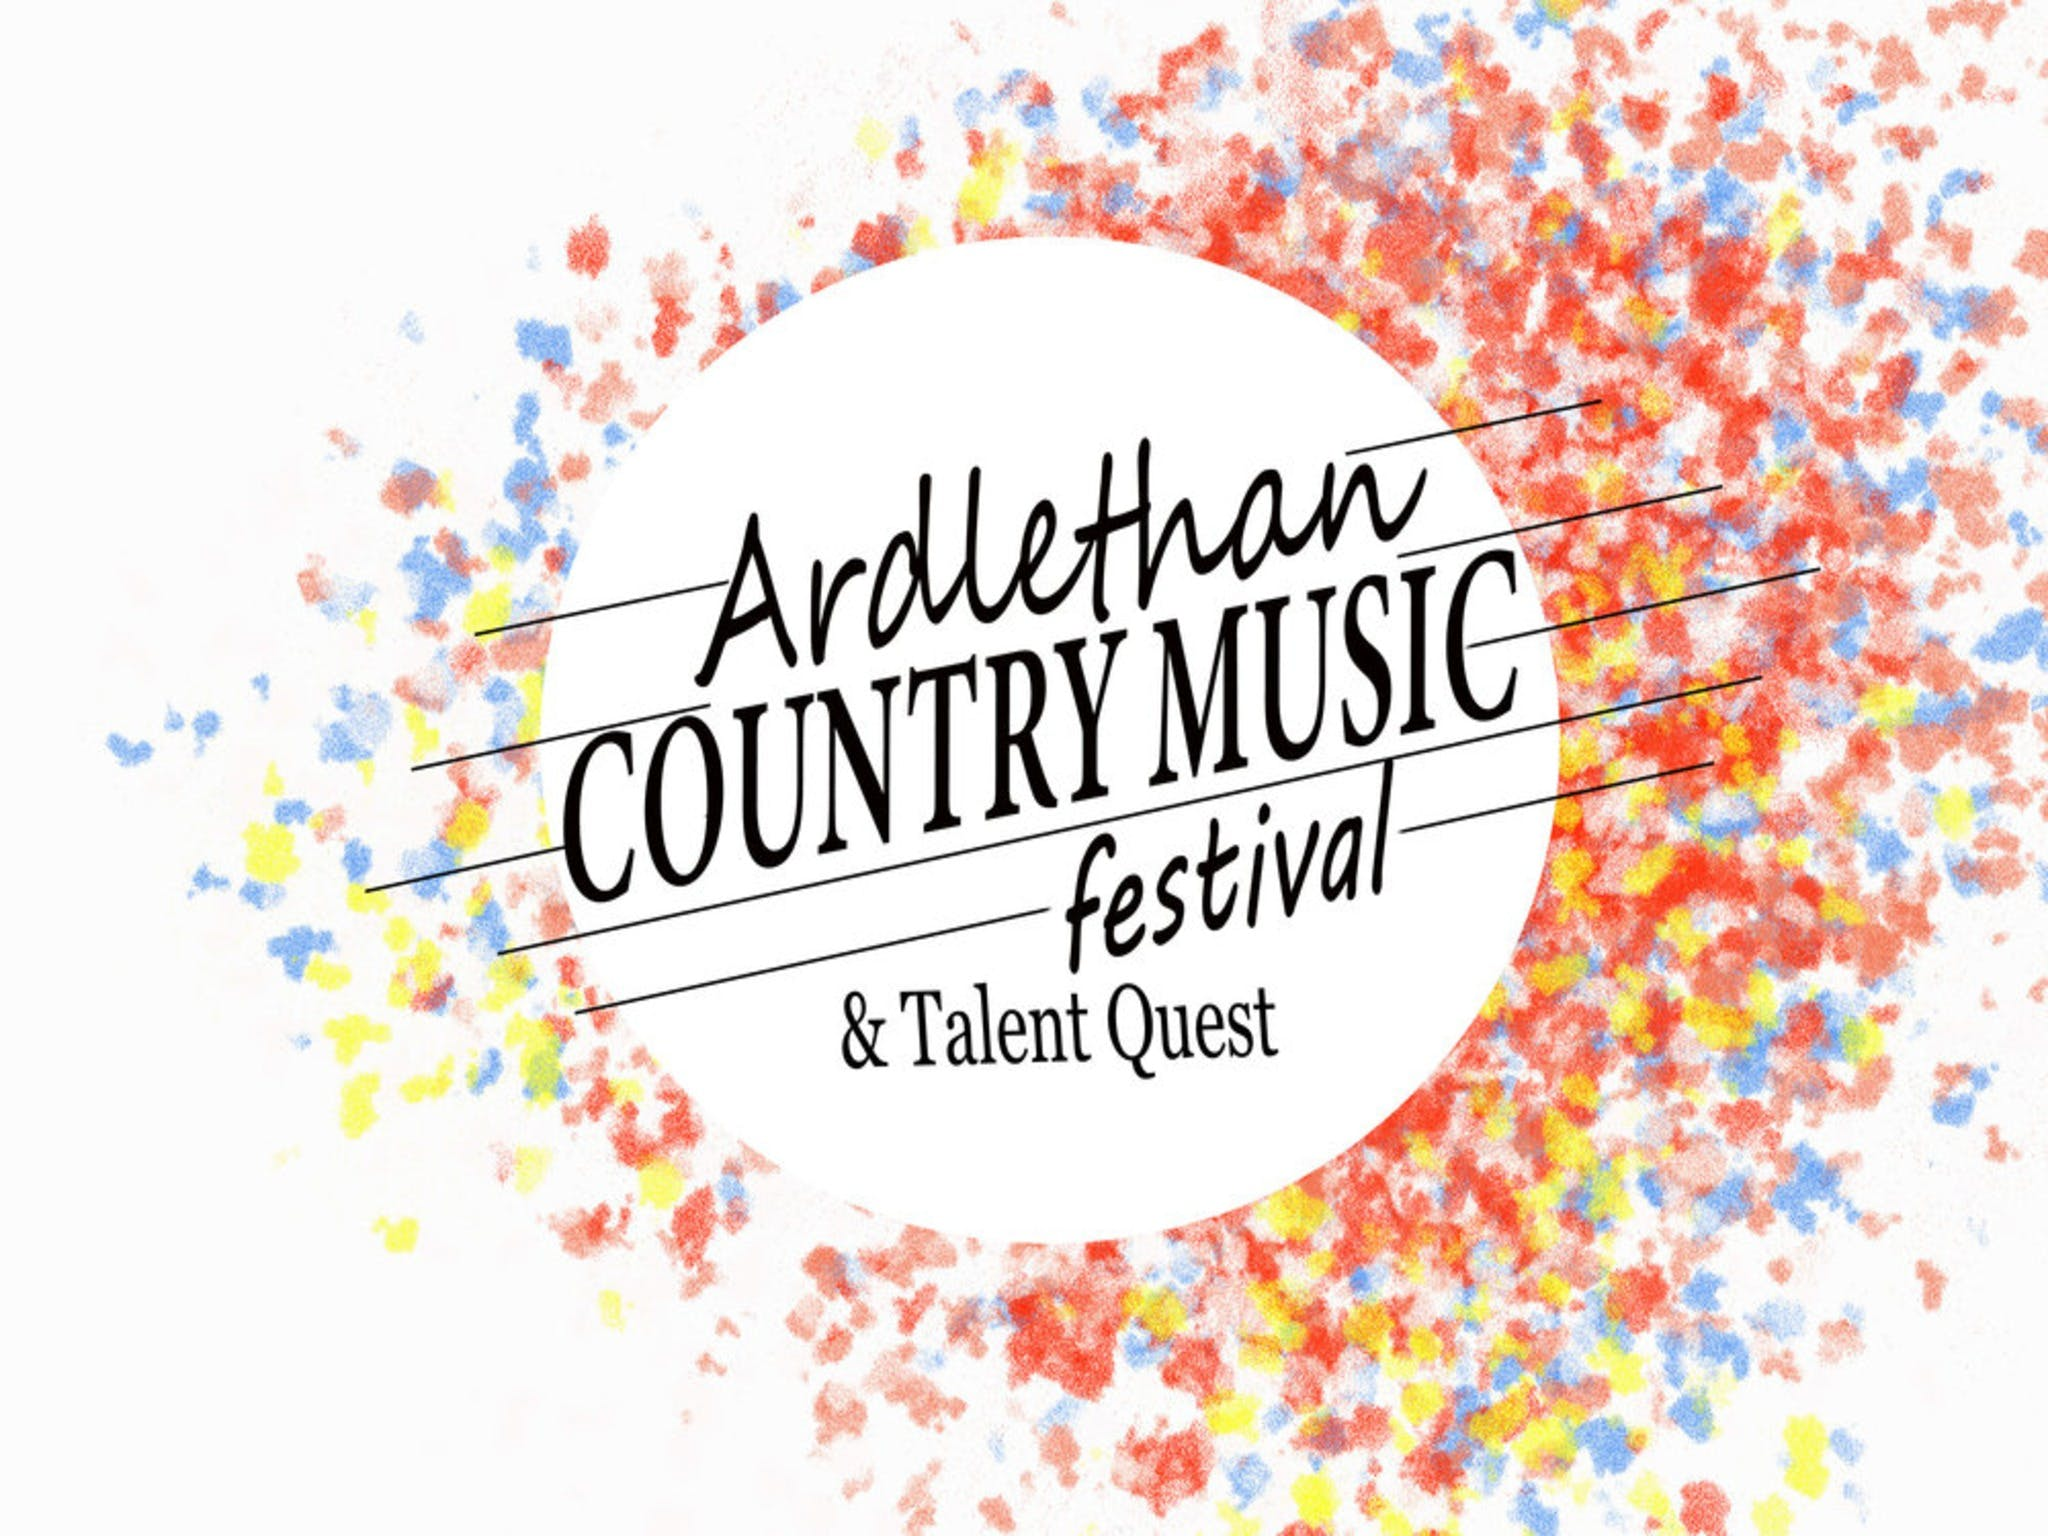 Ardlethan Country Music Festival - Surfers Gold Coast